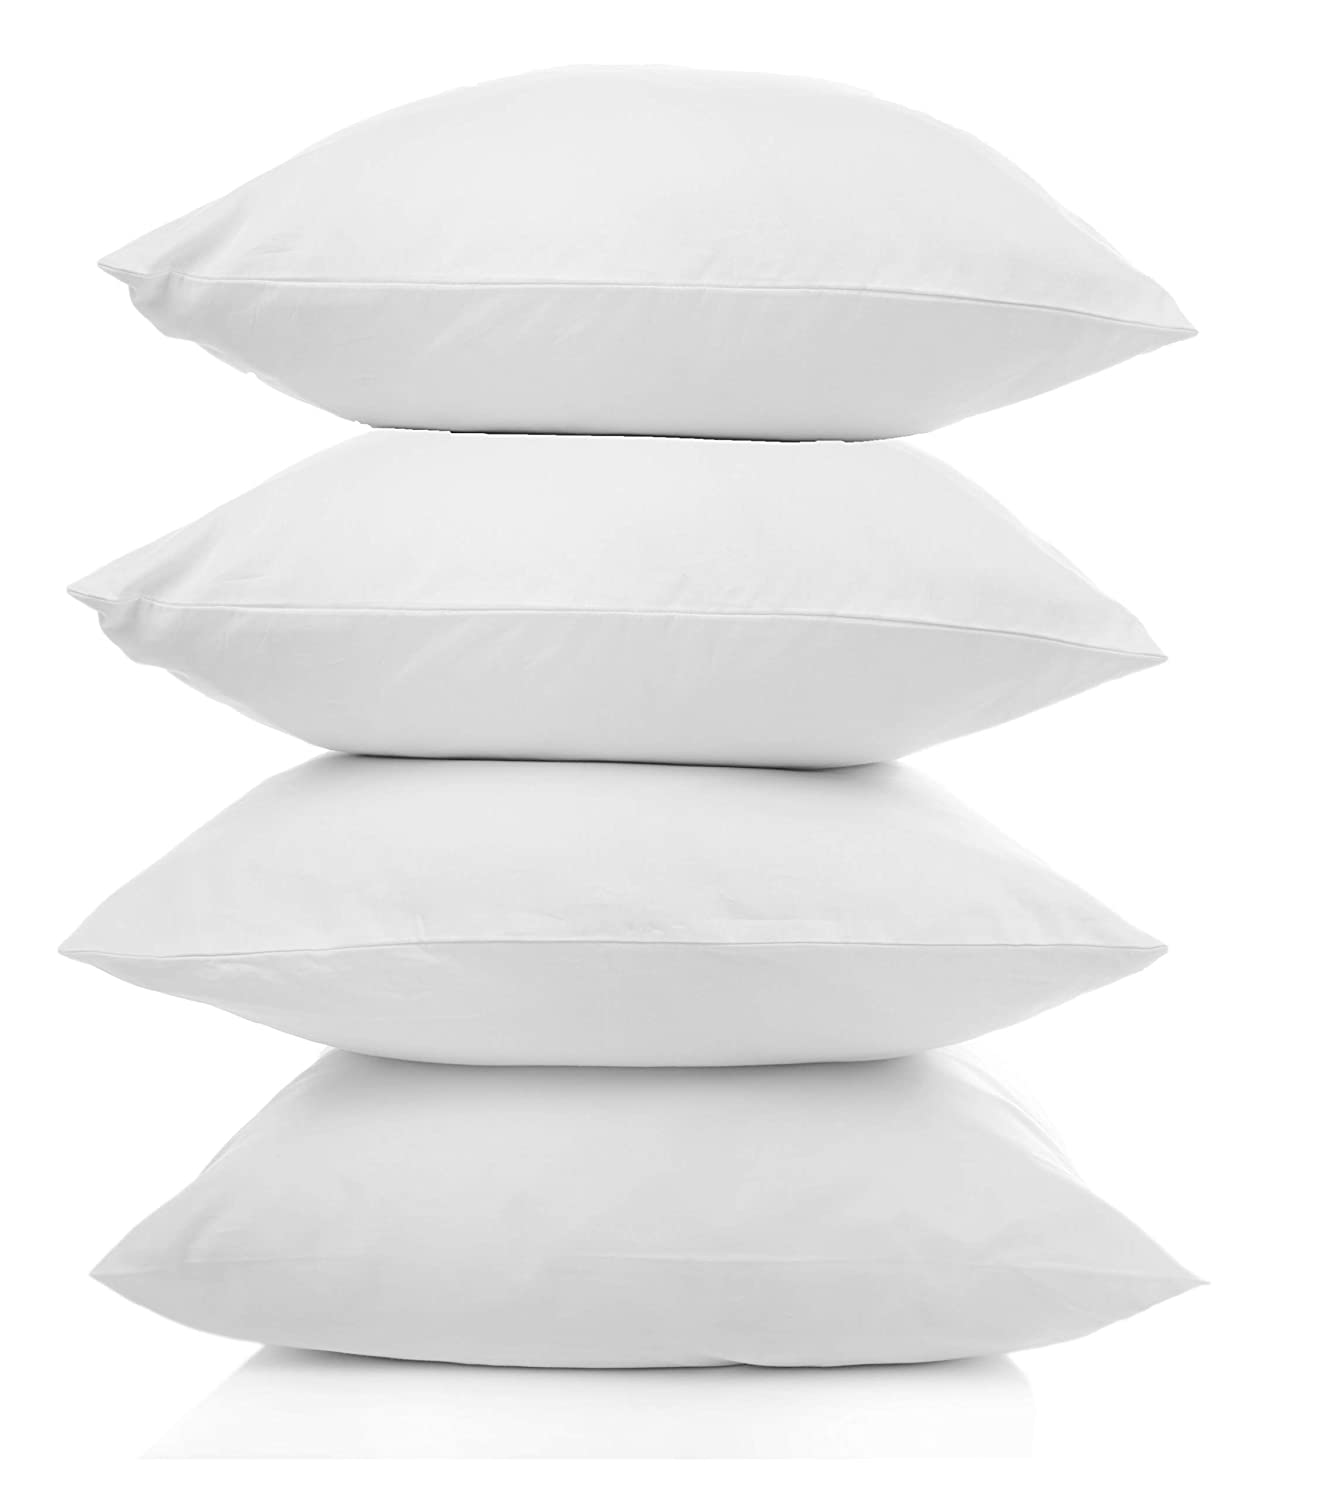 Pal Fabric Outdoor Anti-Mold Waterproof Square Sham Pillow Insert Made in USA Set of 4-20×20